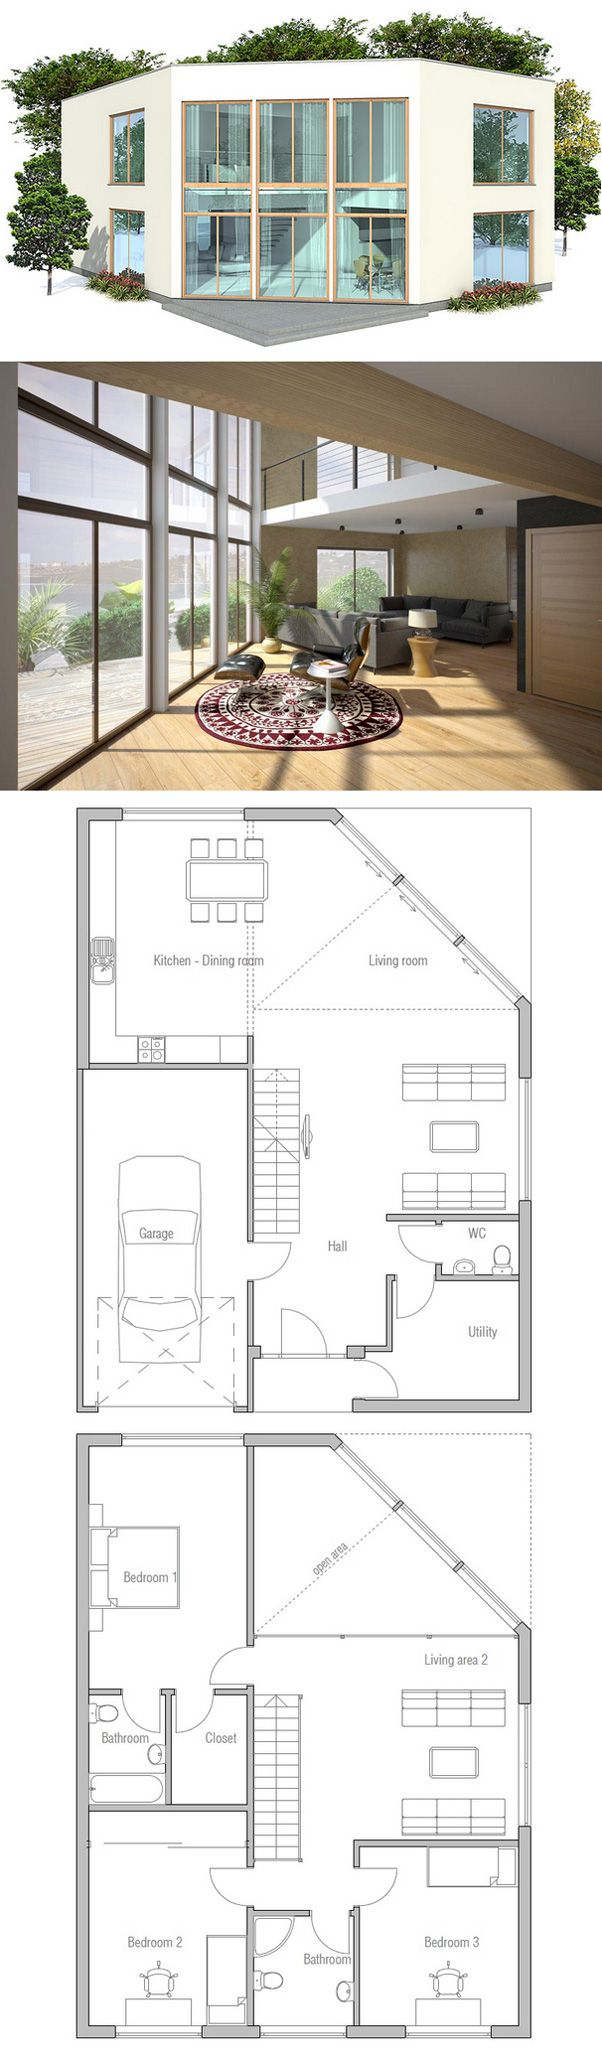 149 best house plans images on pinterest small houses home modern house plan to narrow lot in two levels simple lines and shapes spacious interior areas three bedrooms